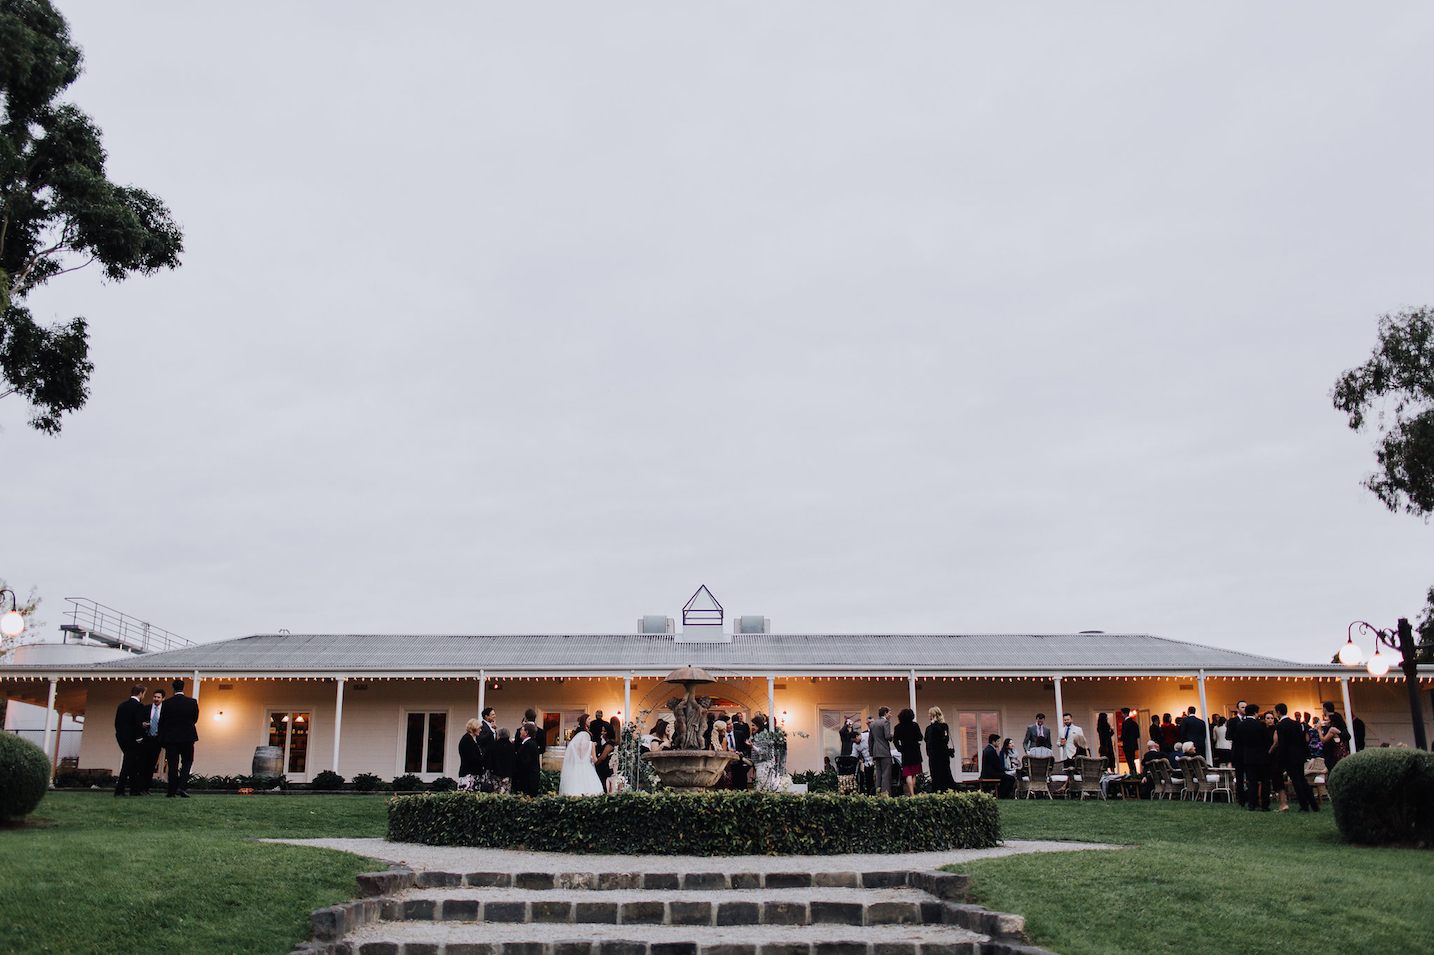 Melbourne/ Yarra valley Wedding Venue